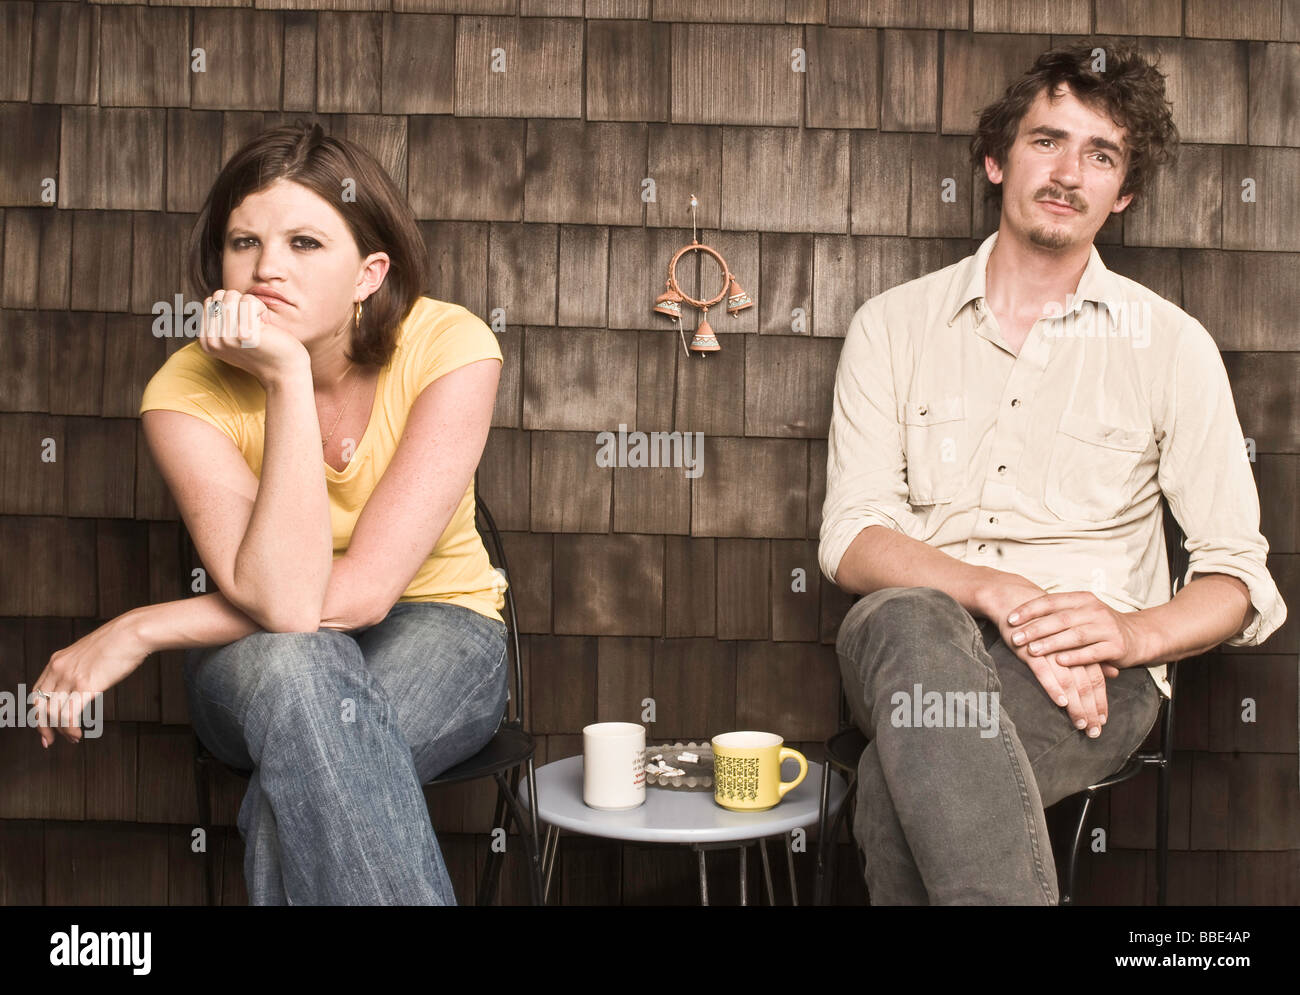 A young woman and a young man are sitting on chairs, looking disconnected from each other, with a coffee table in - Stock Image